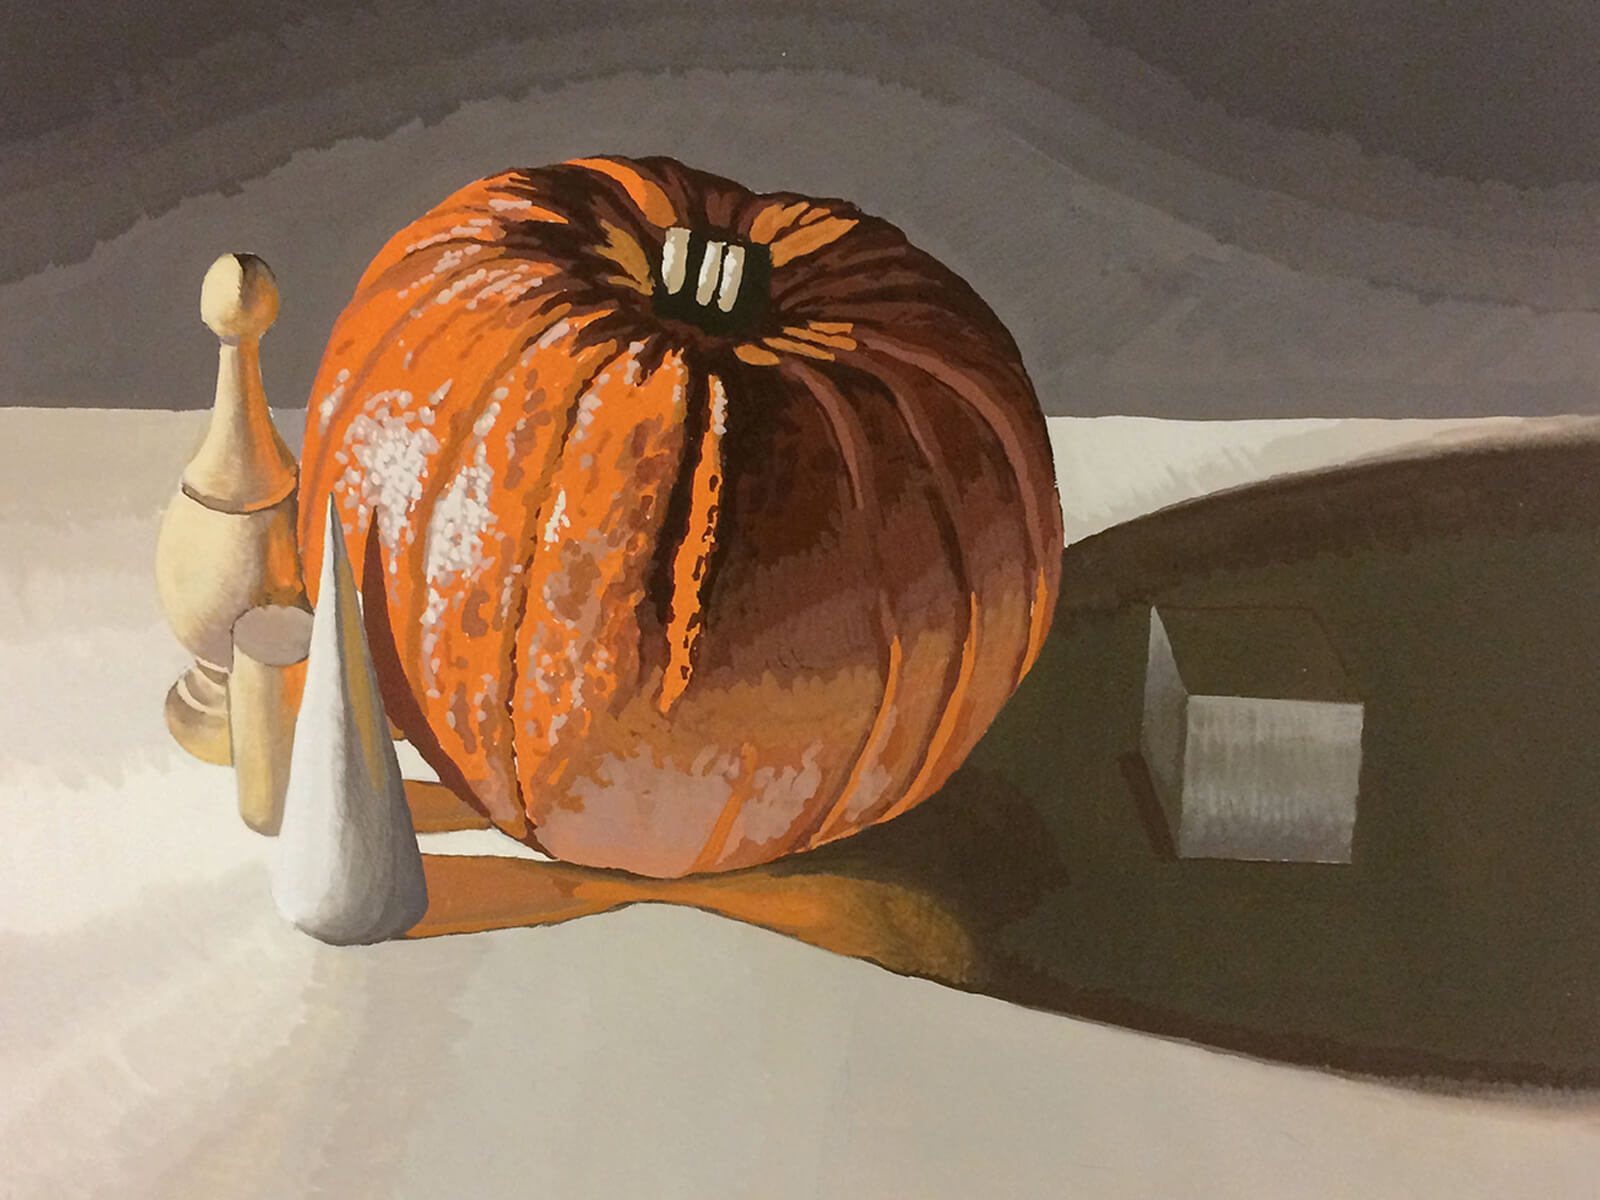 still-life traditional painting of a pumpkin with various objects, including a cube, surrounding it